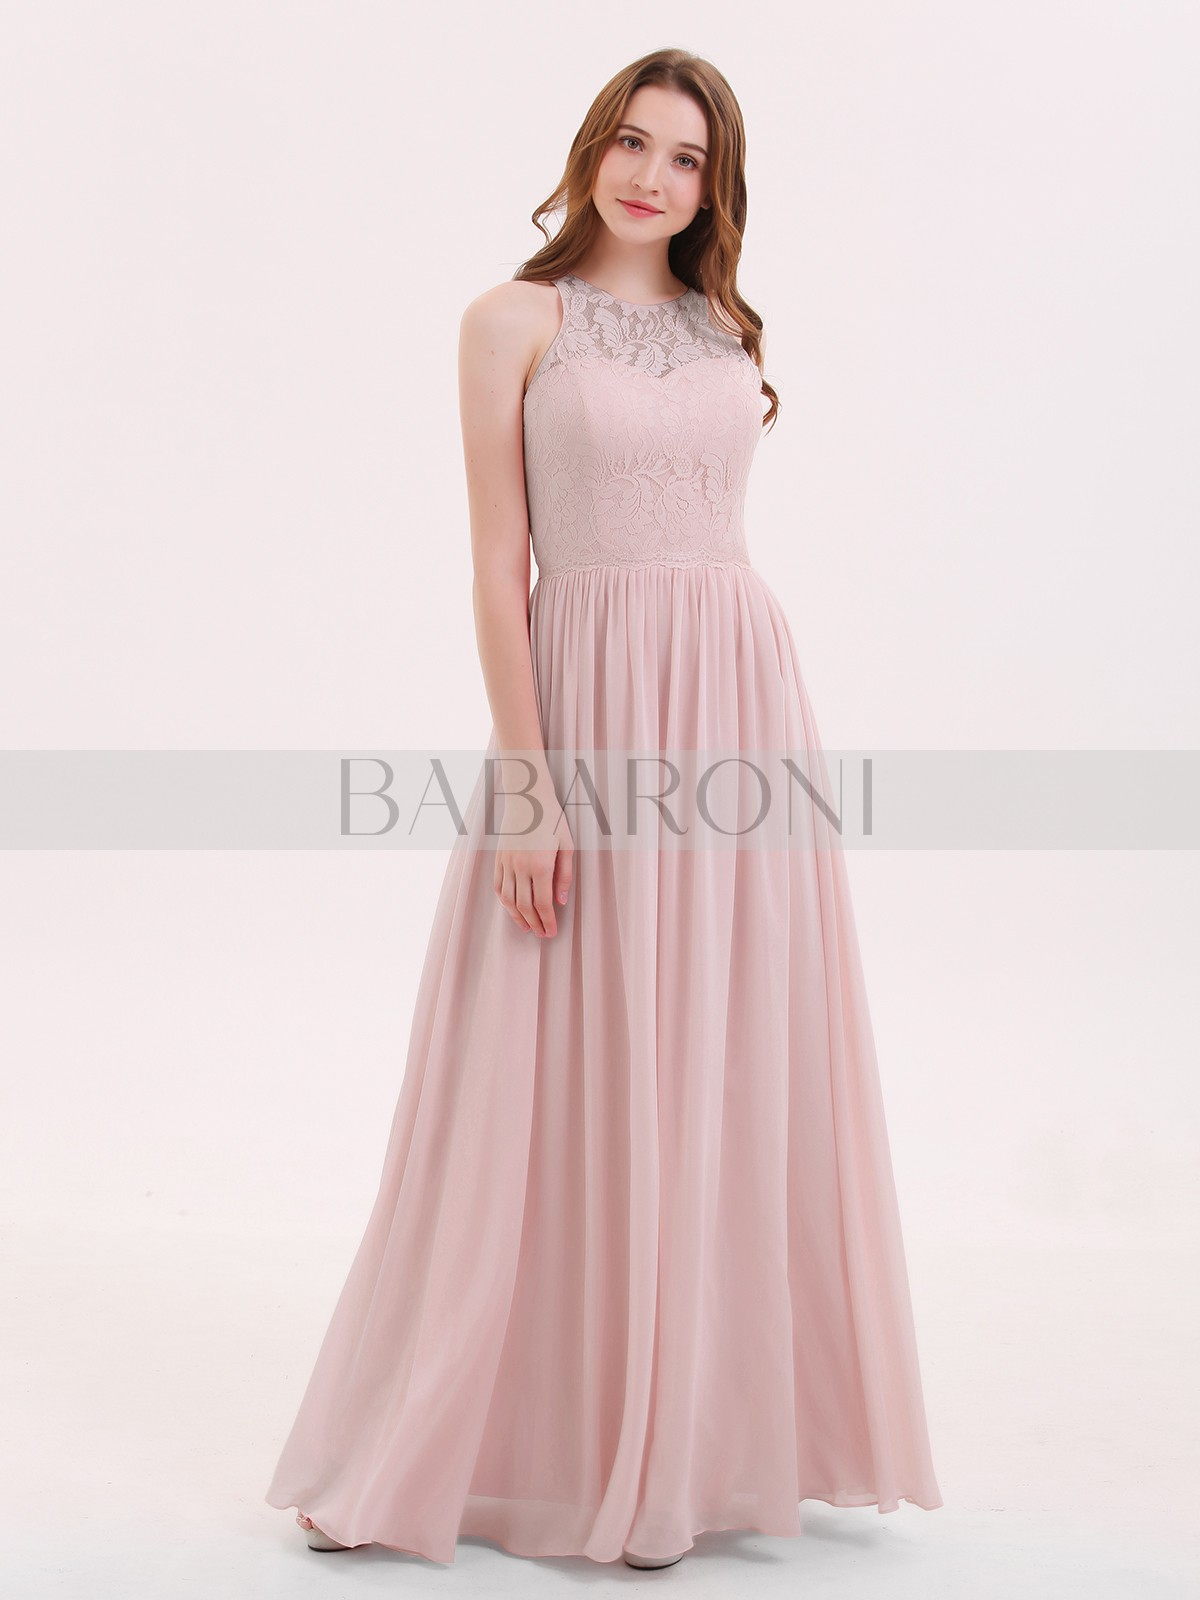 5a4d0c874cc Dusty Rose Suzanne Long Lace Dress with Illusion Sweetheart Neck ...